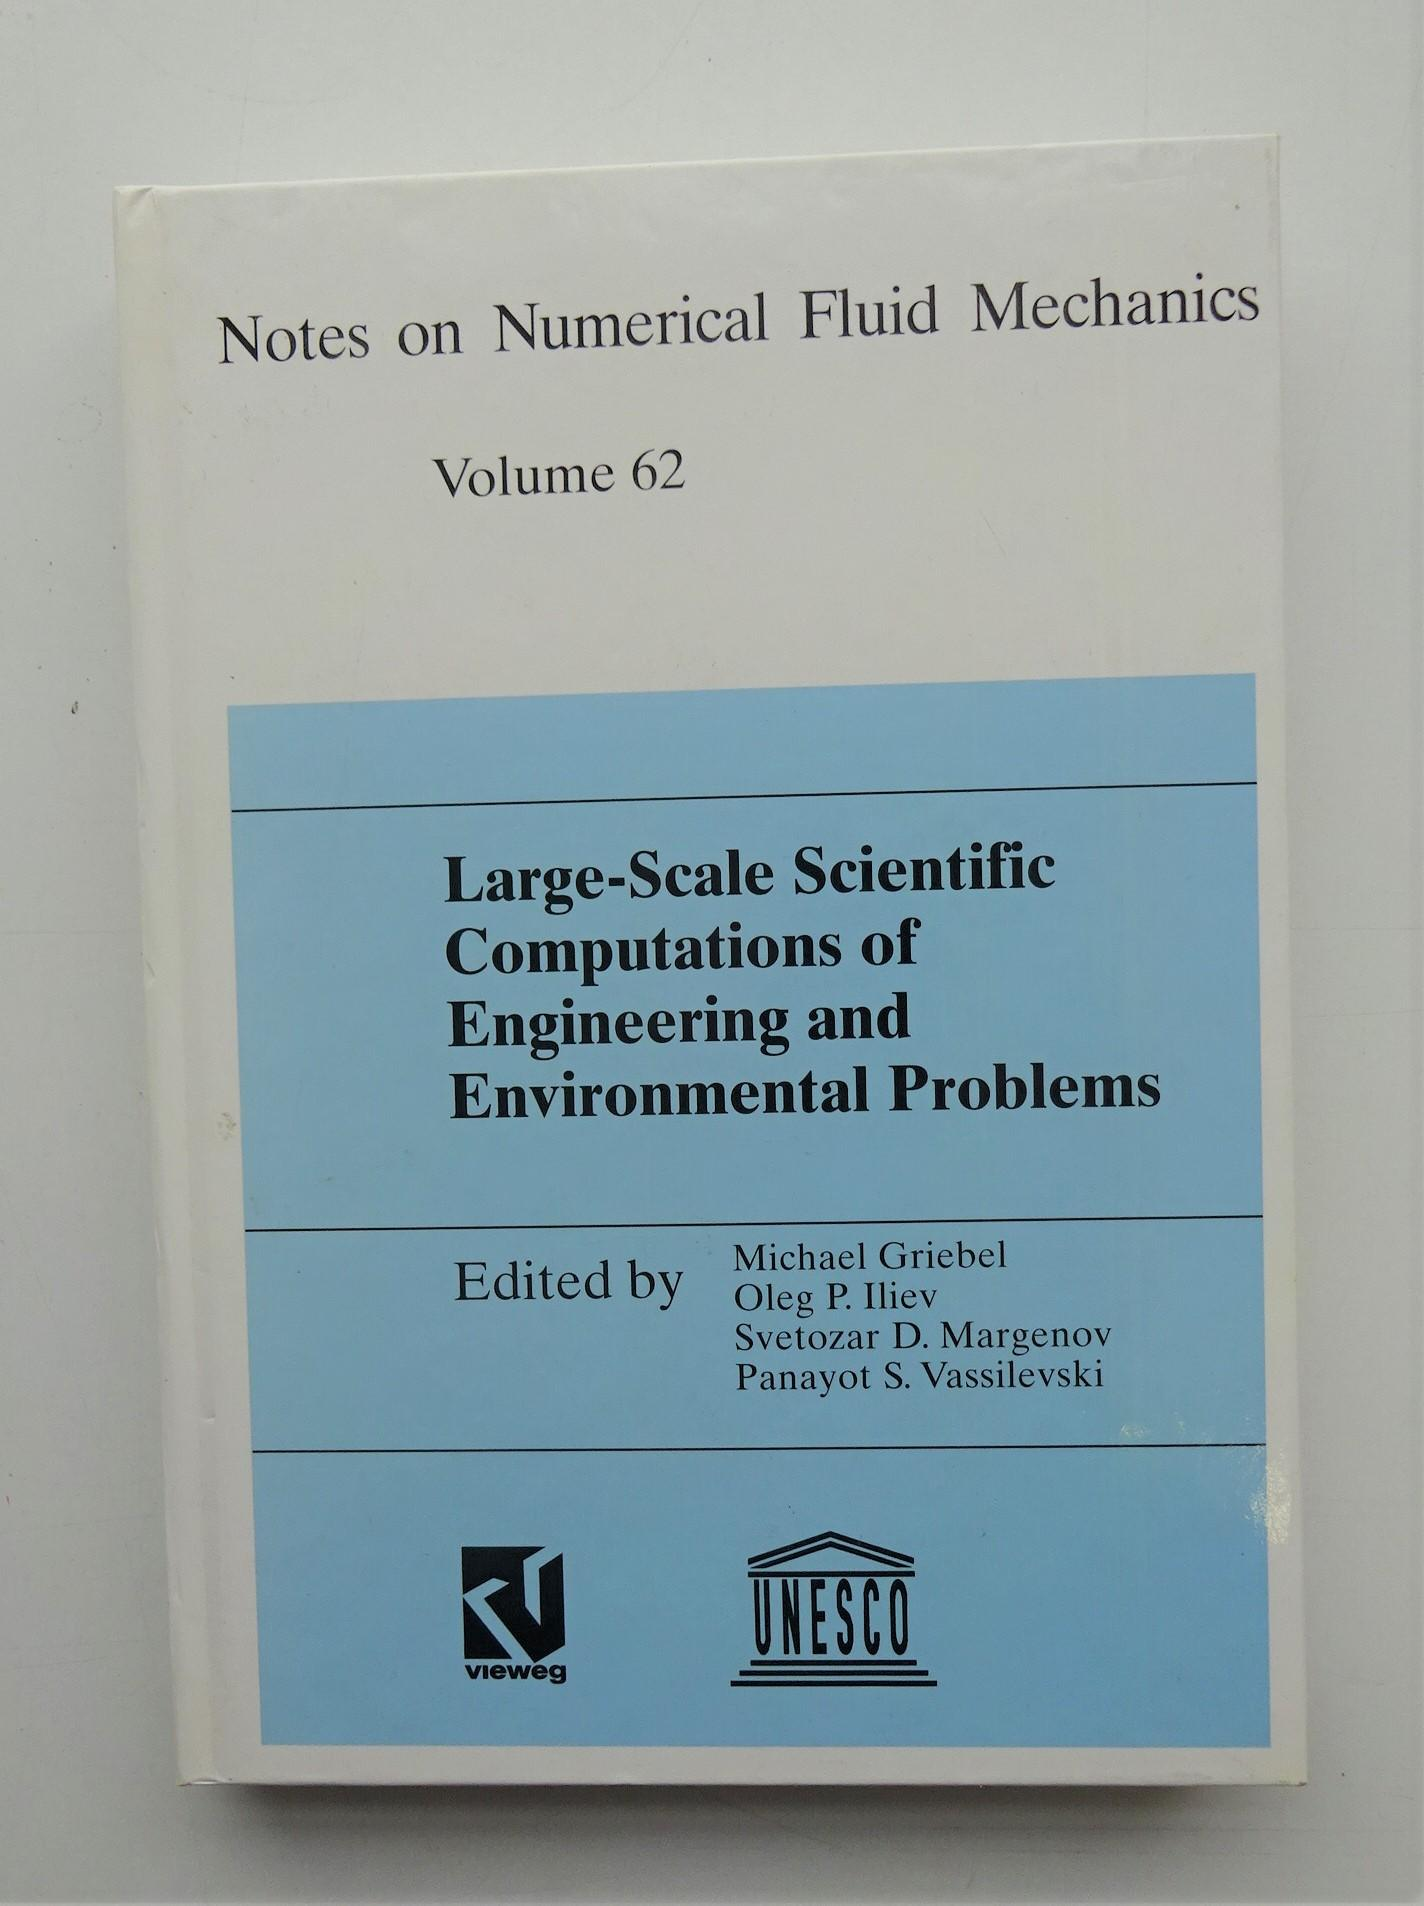 Large-Scale Scientific Computations of Engineering and Environmental Problems. Proceedings of the First Workshop on